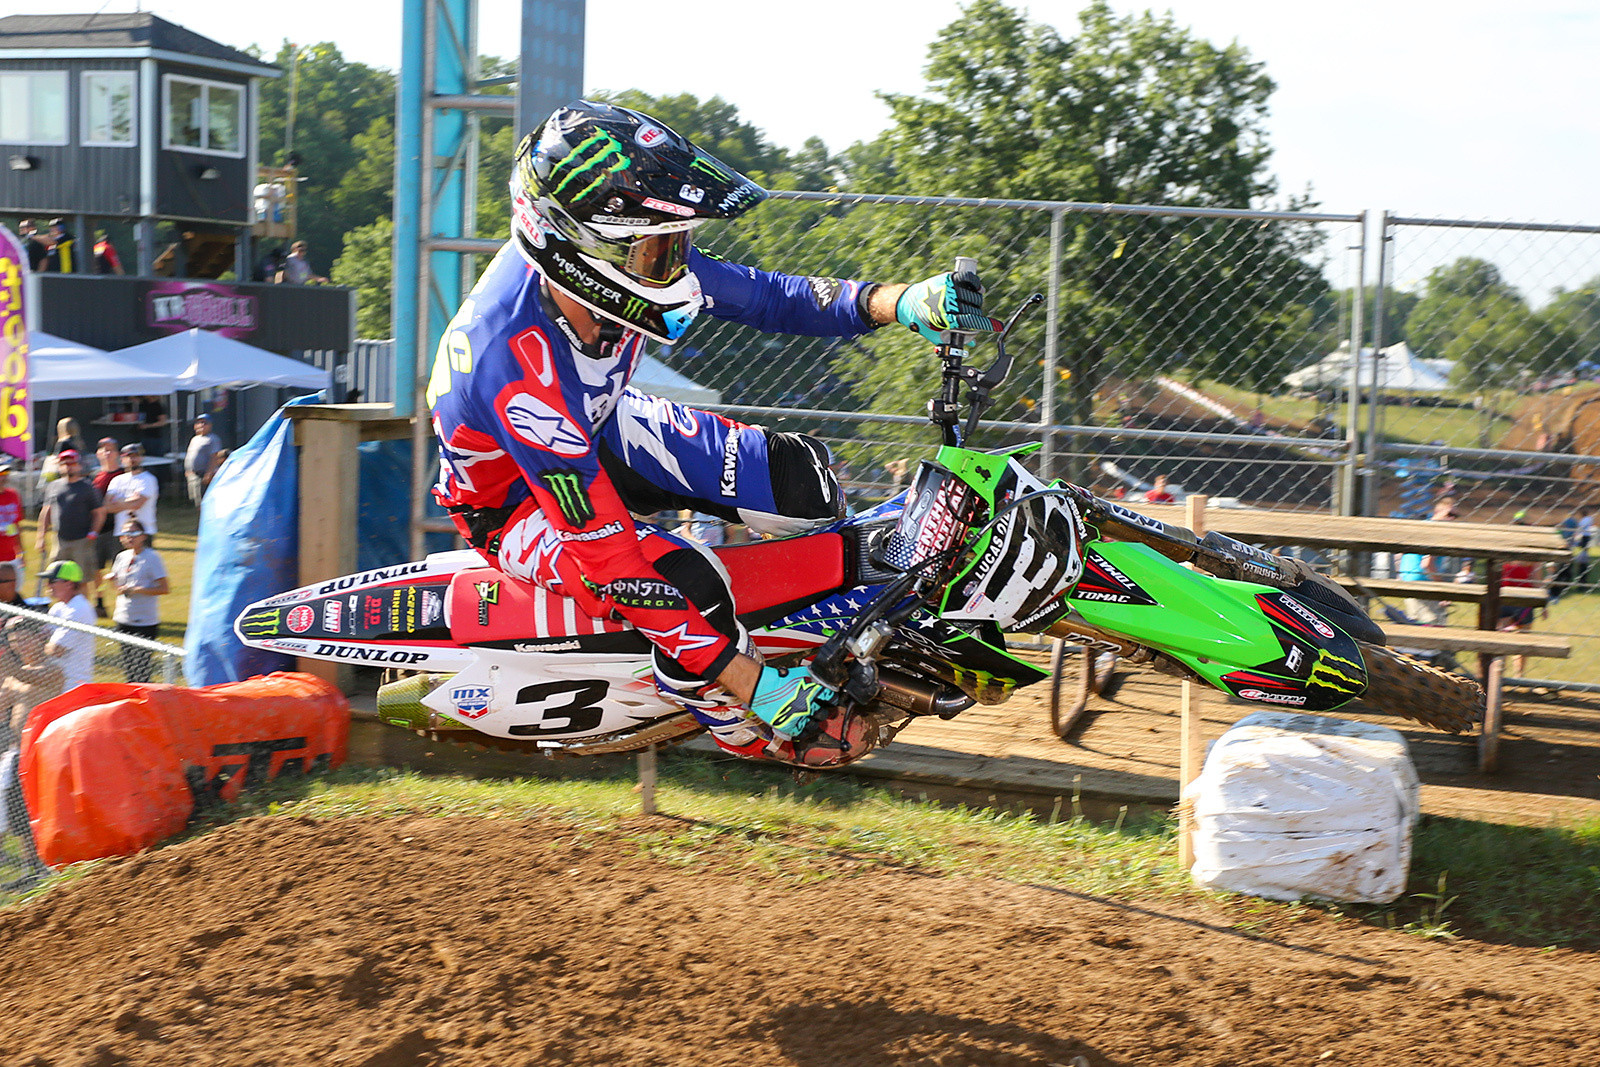 How about some style shots as we get ready to close this one up? Eli Tomac knows style.